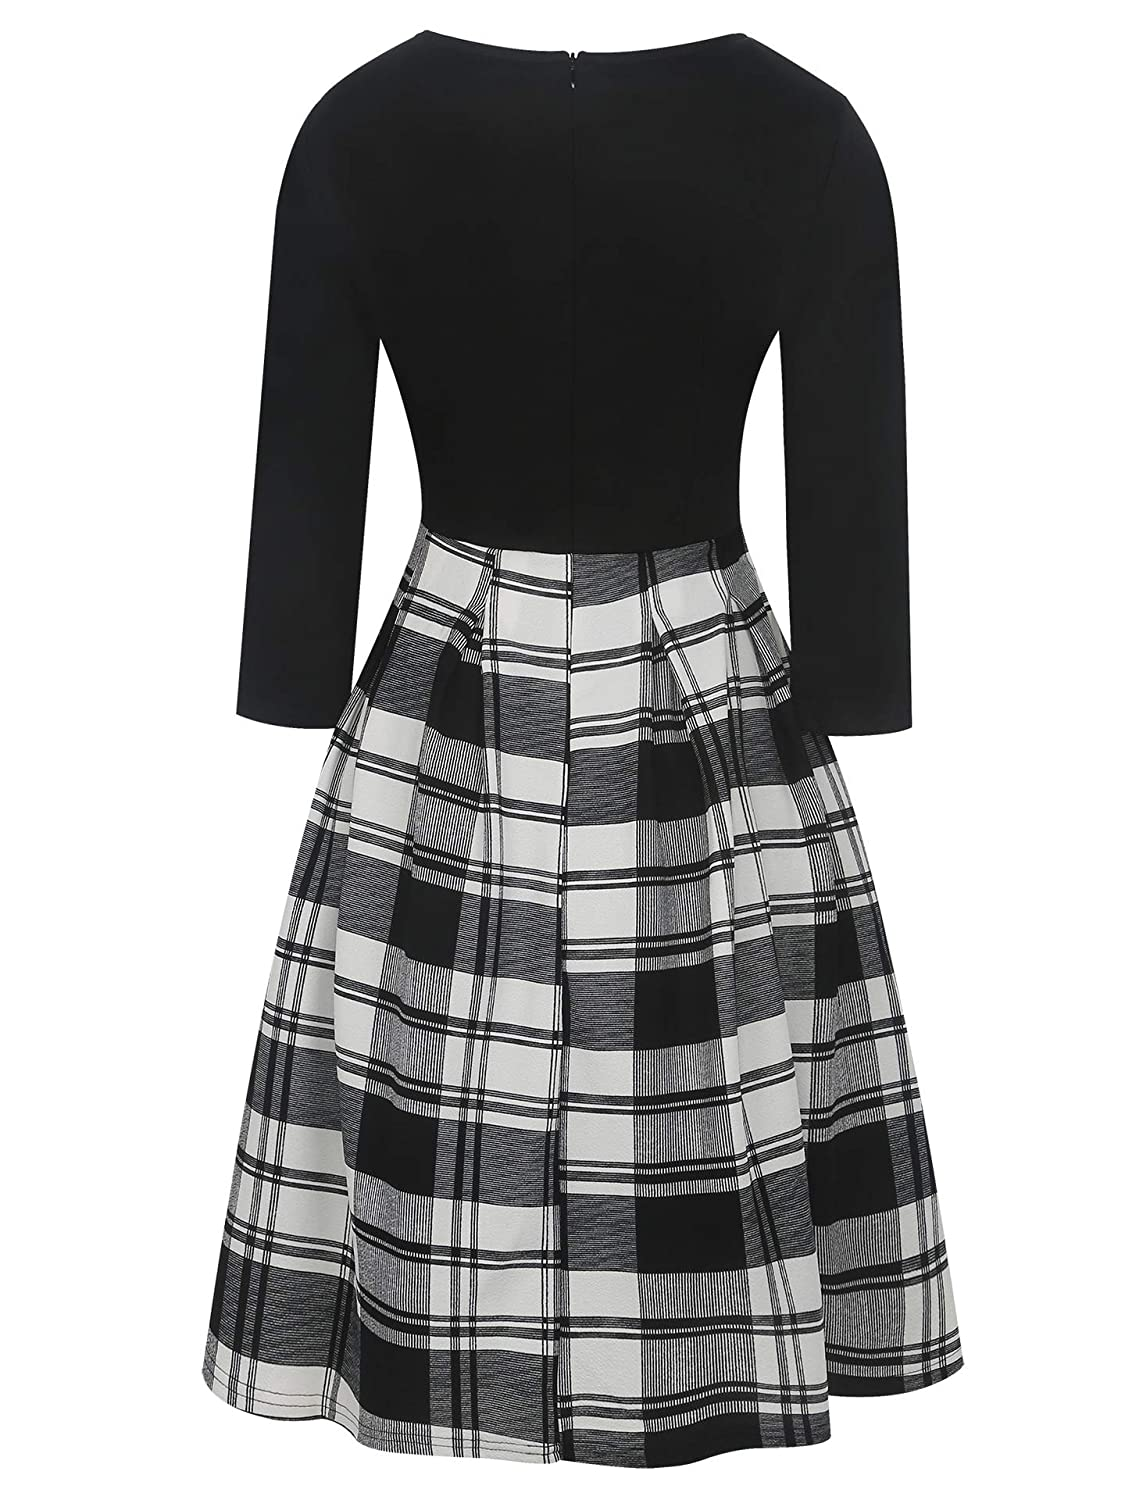 MERRYA Womens Vintage Plaid Stripe Print Casual Work Party Dress with Pockets